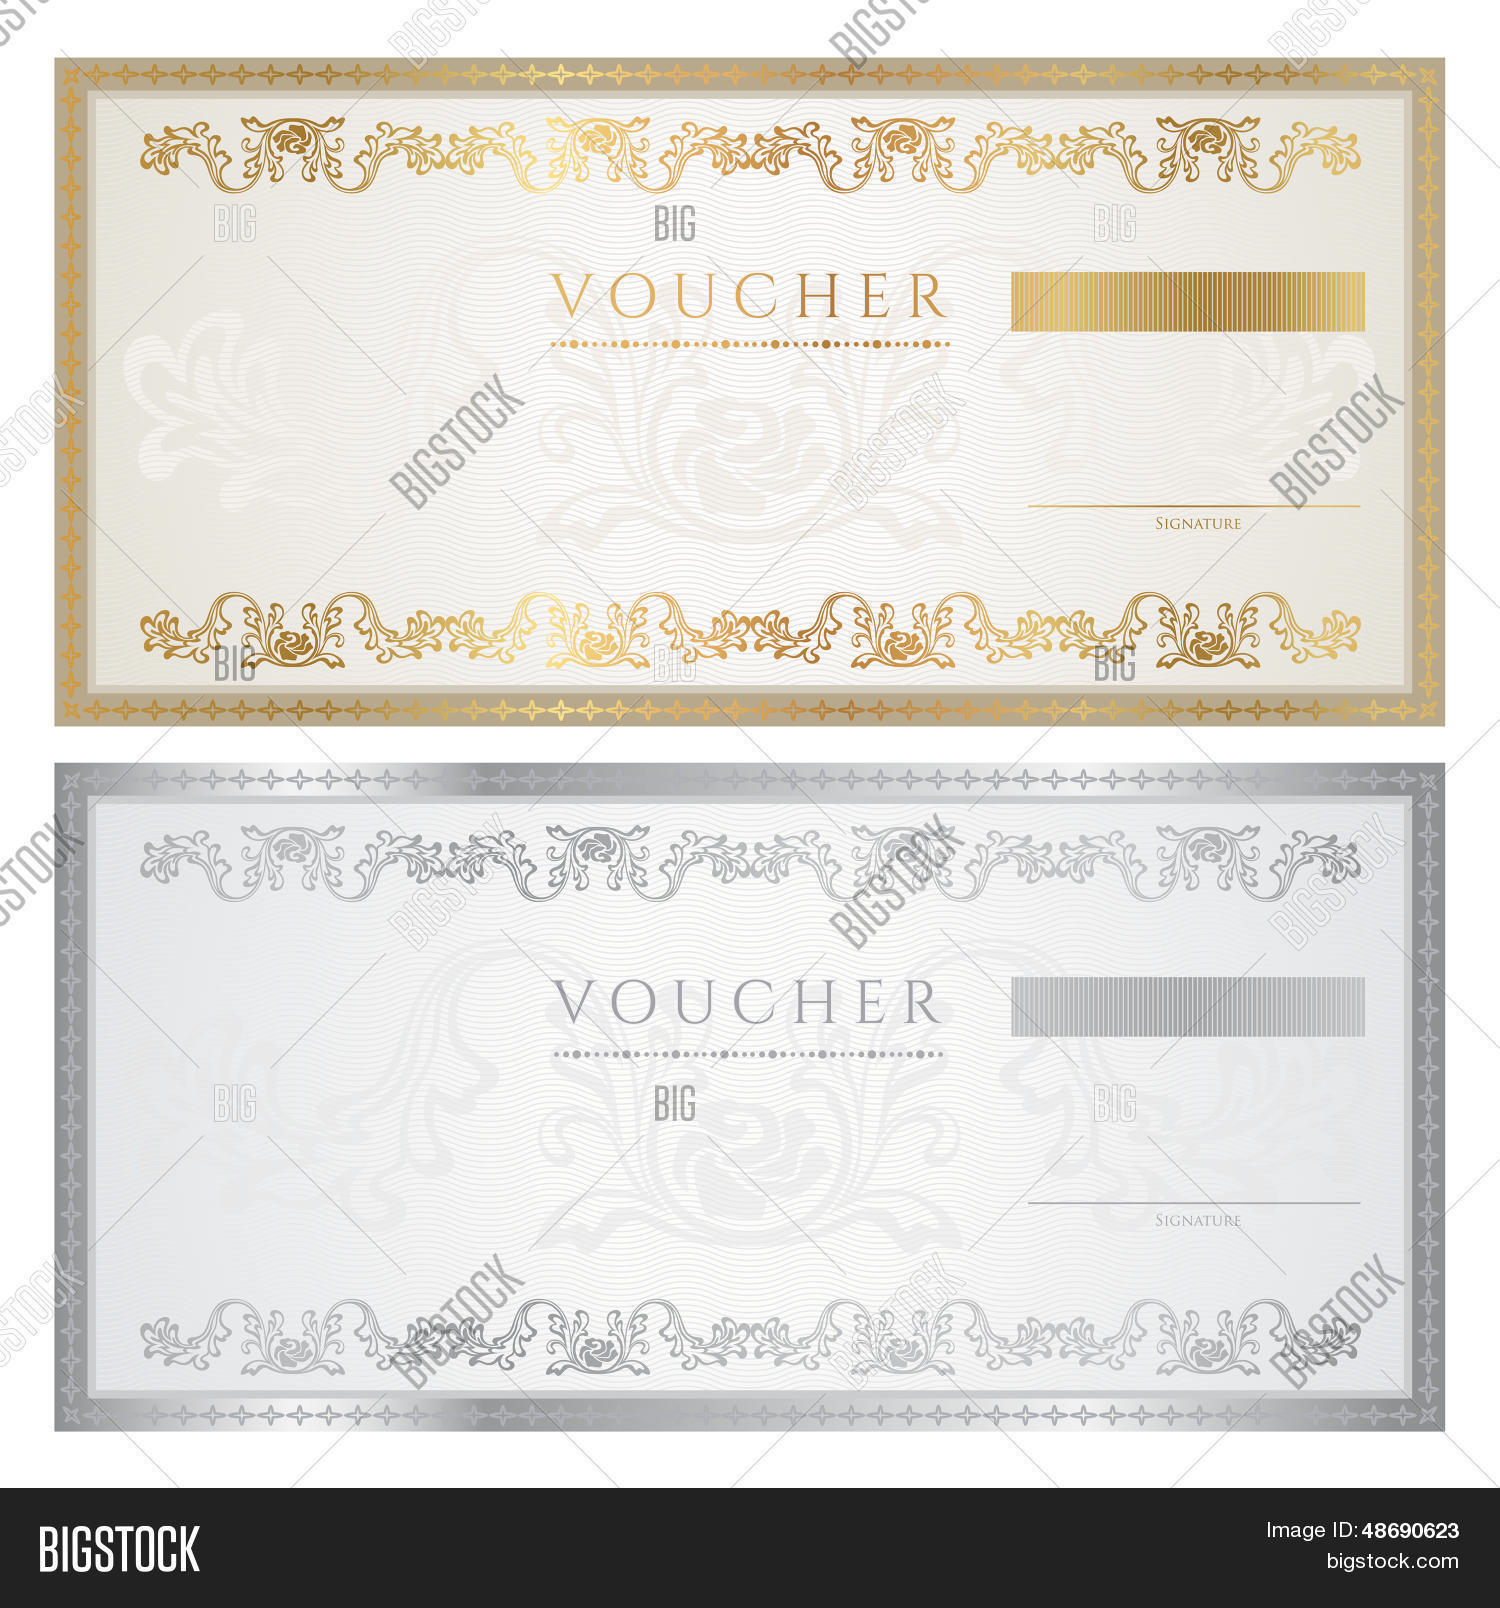 Gift voucher certificate coupon template banknote for Cheque voucher template